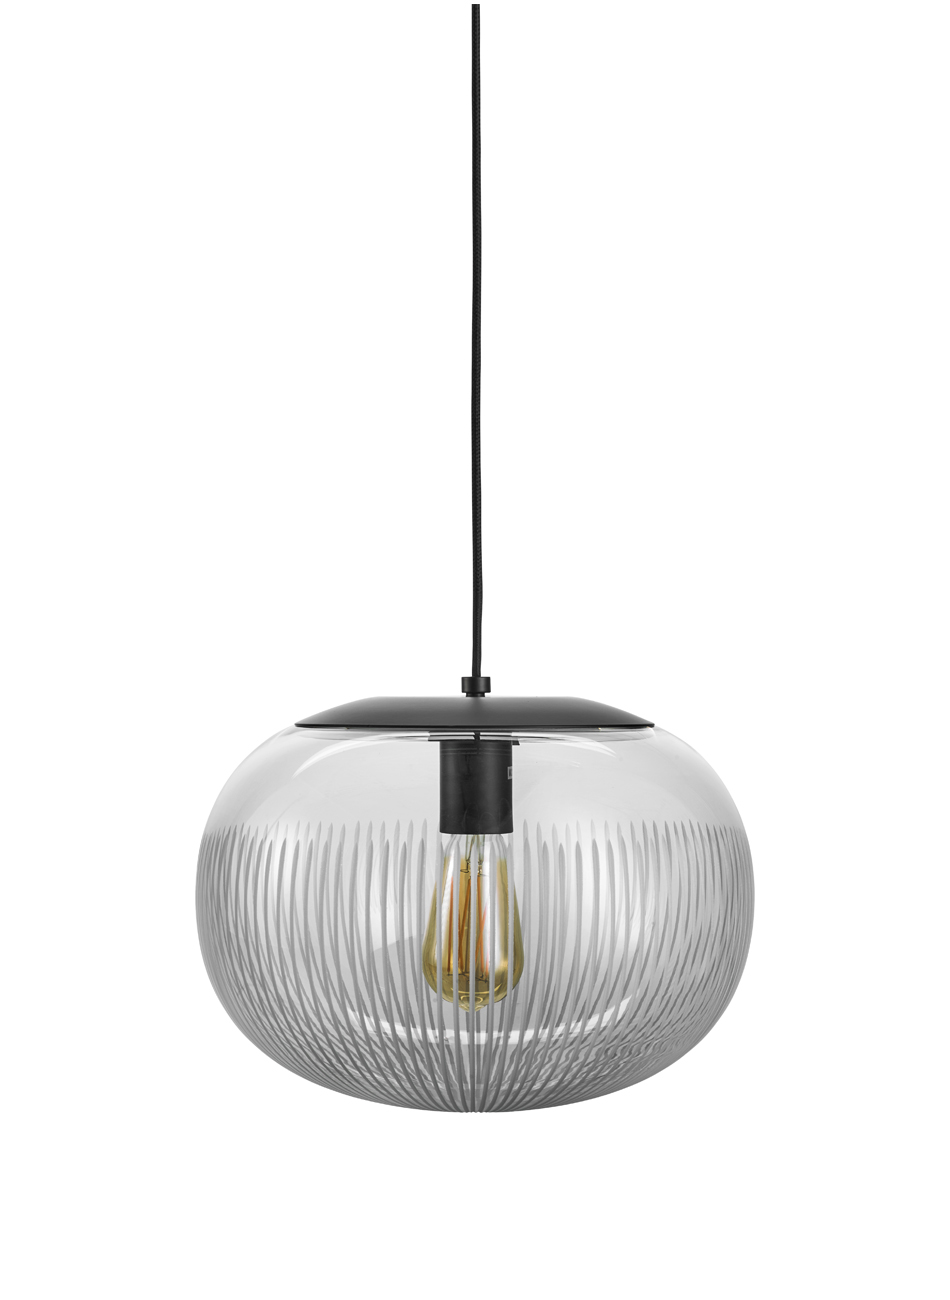 lamp - Denis Guidone bolia design - 02